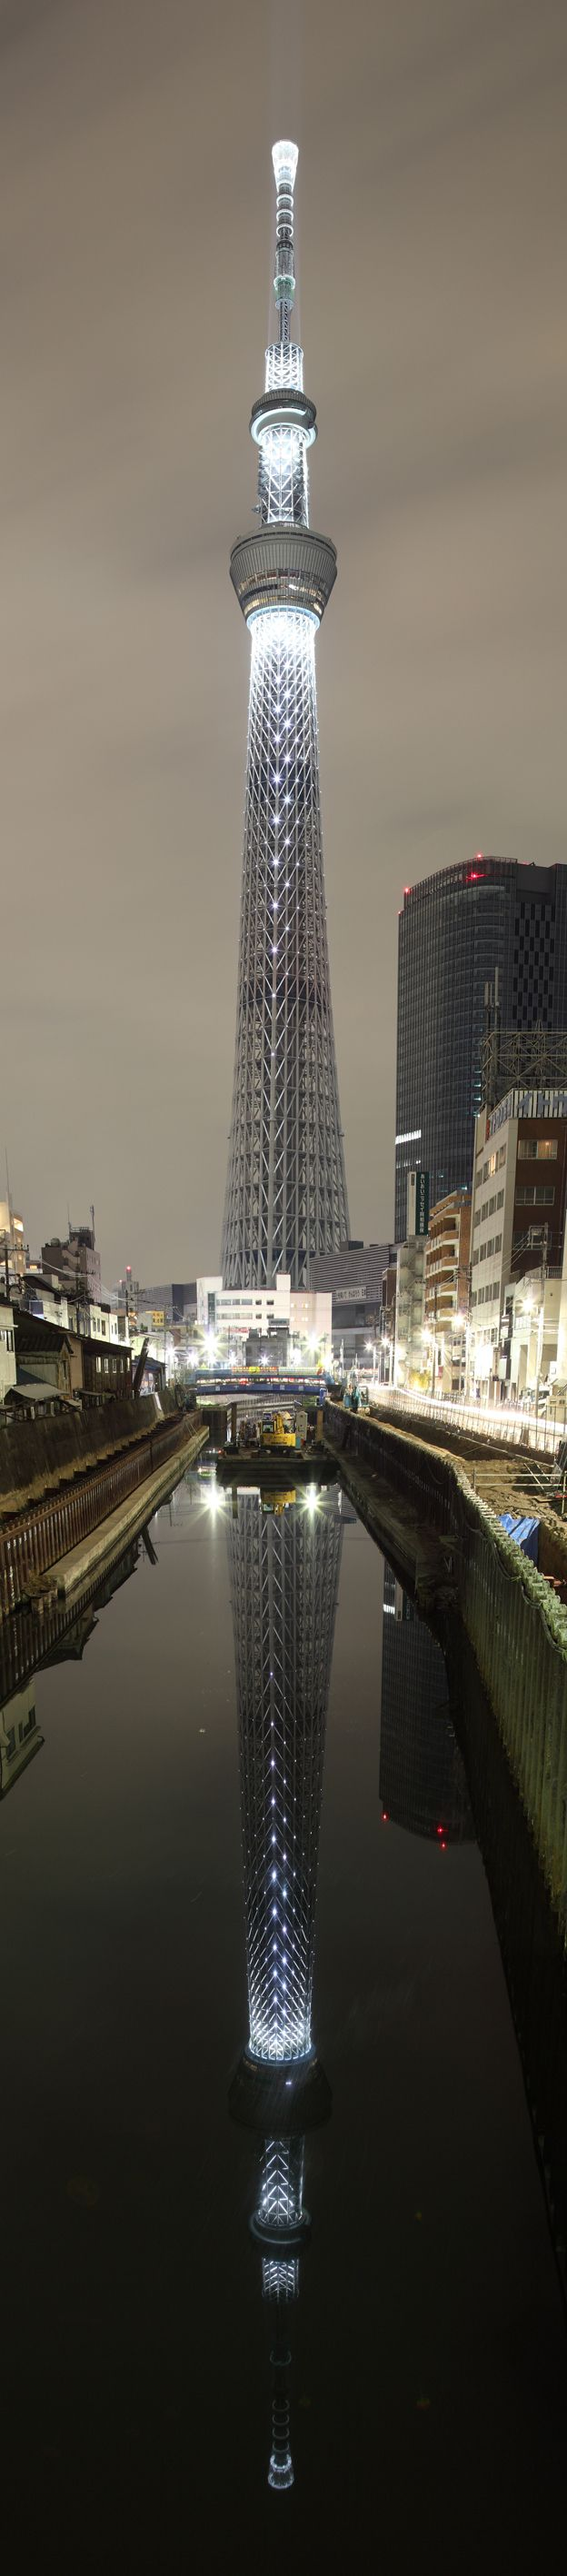 Skytree, Tokyo - the seismic-proofed tower is the second tallest structure in the world, after Burj Khalifa.